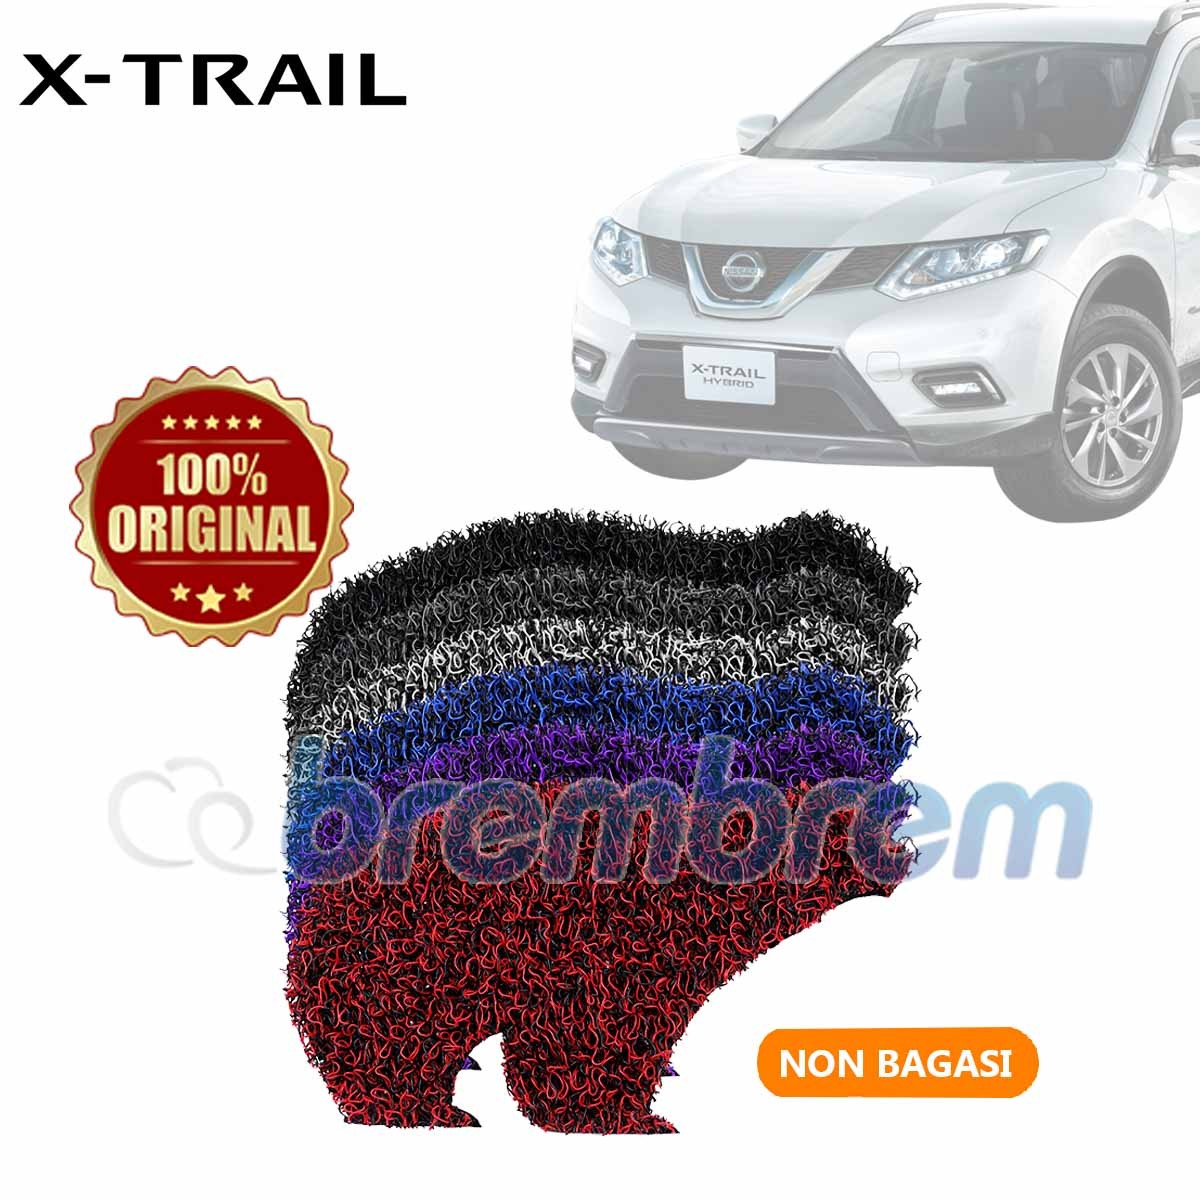 KARPET FIRST CLASS NON BAGASI NISSAN ALL NEW XTRAIL